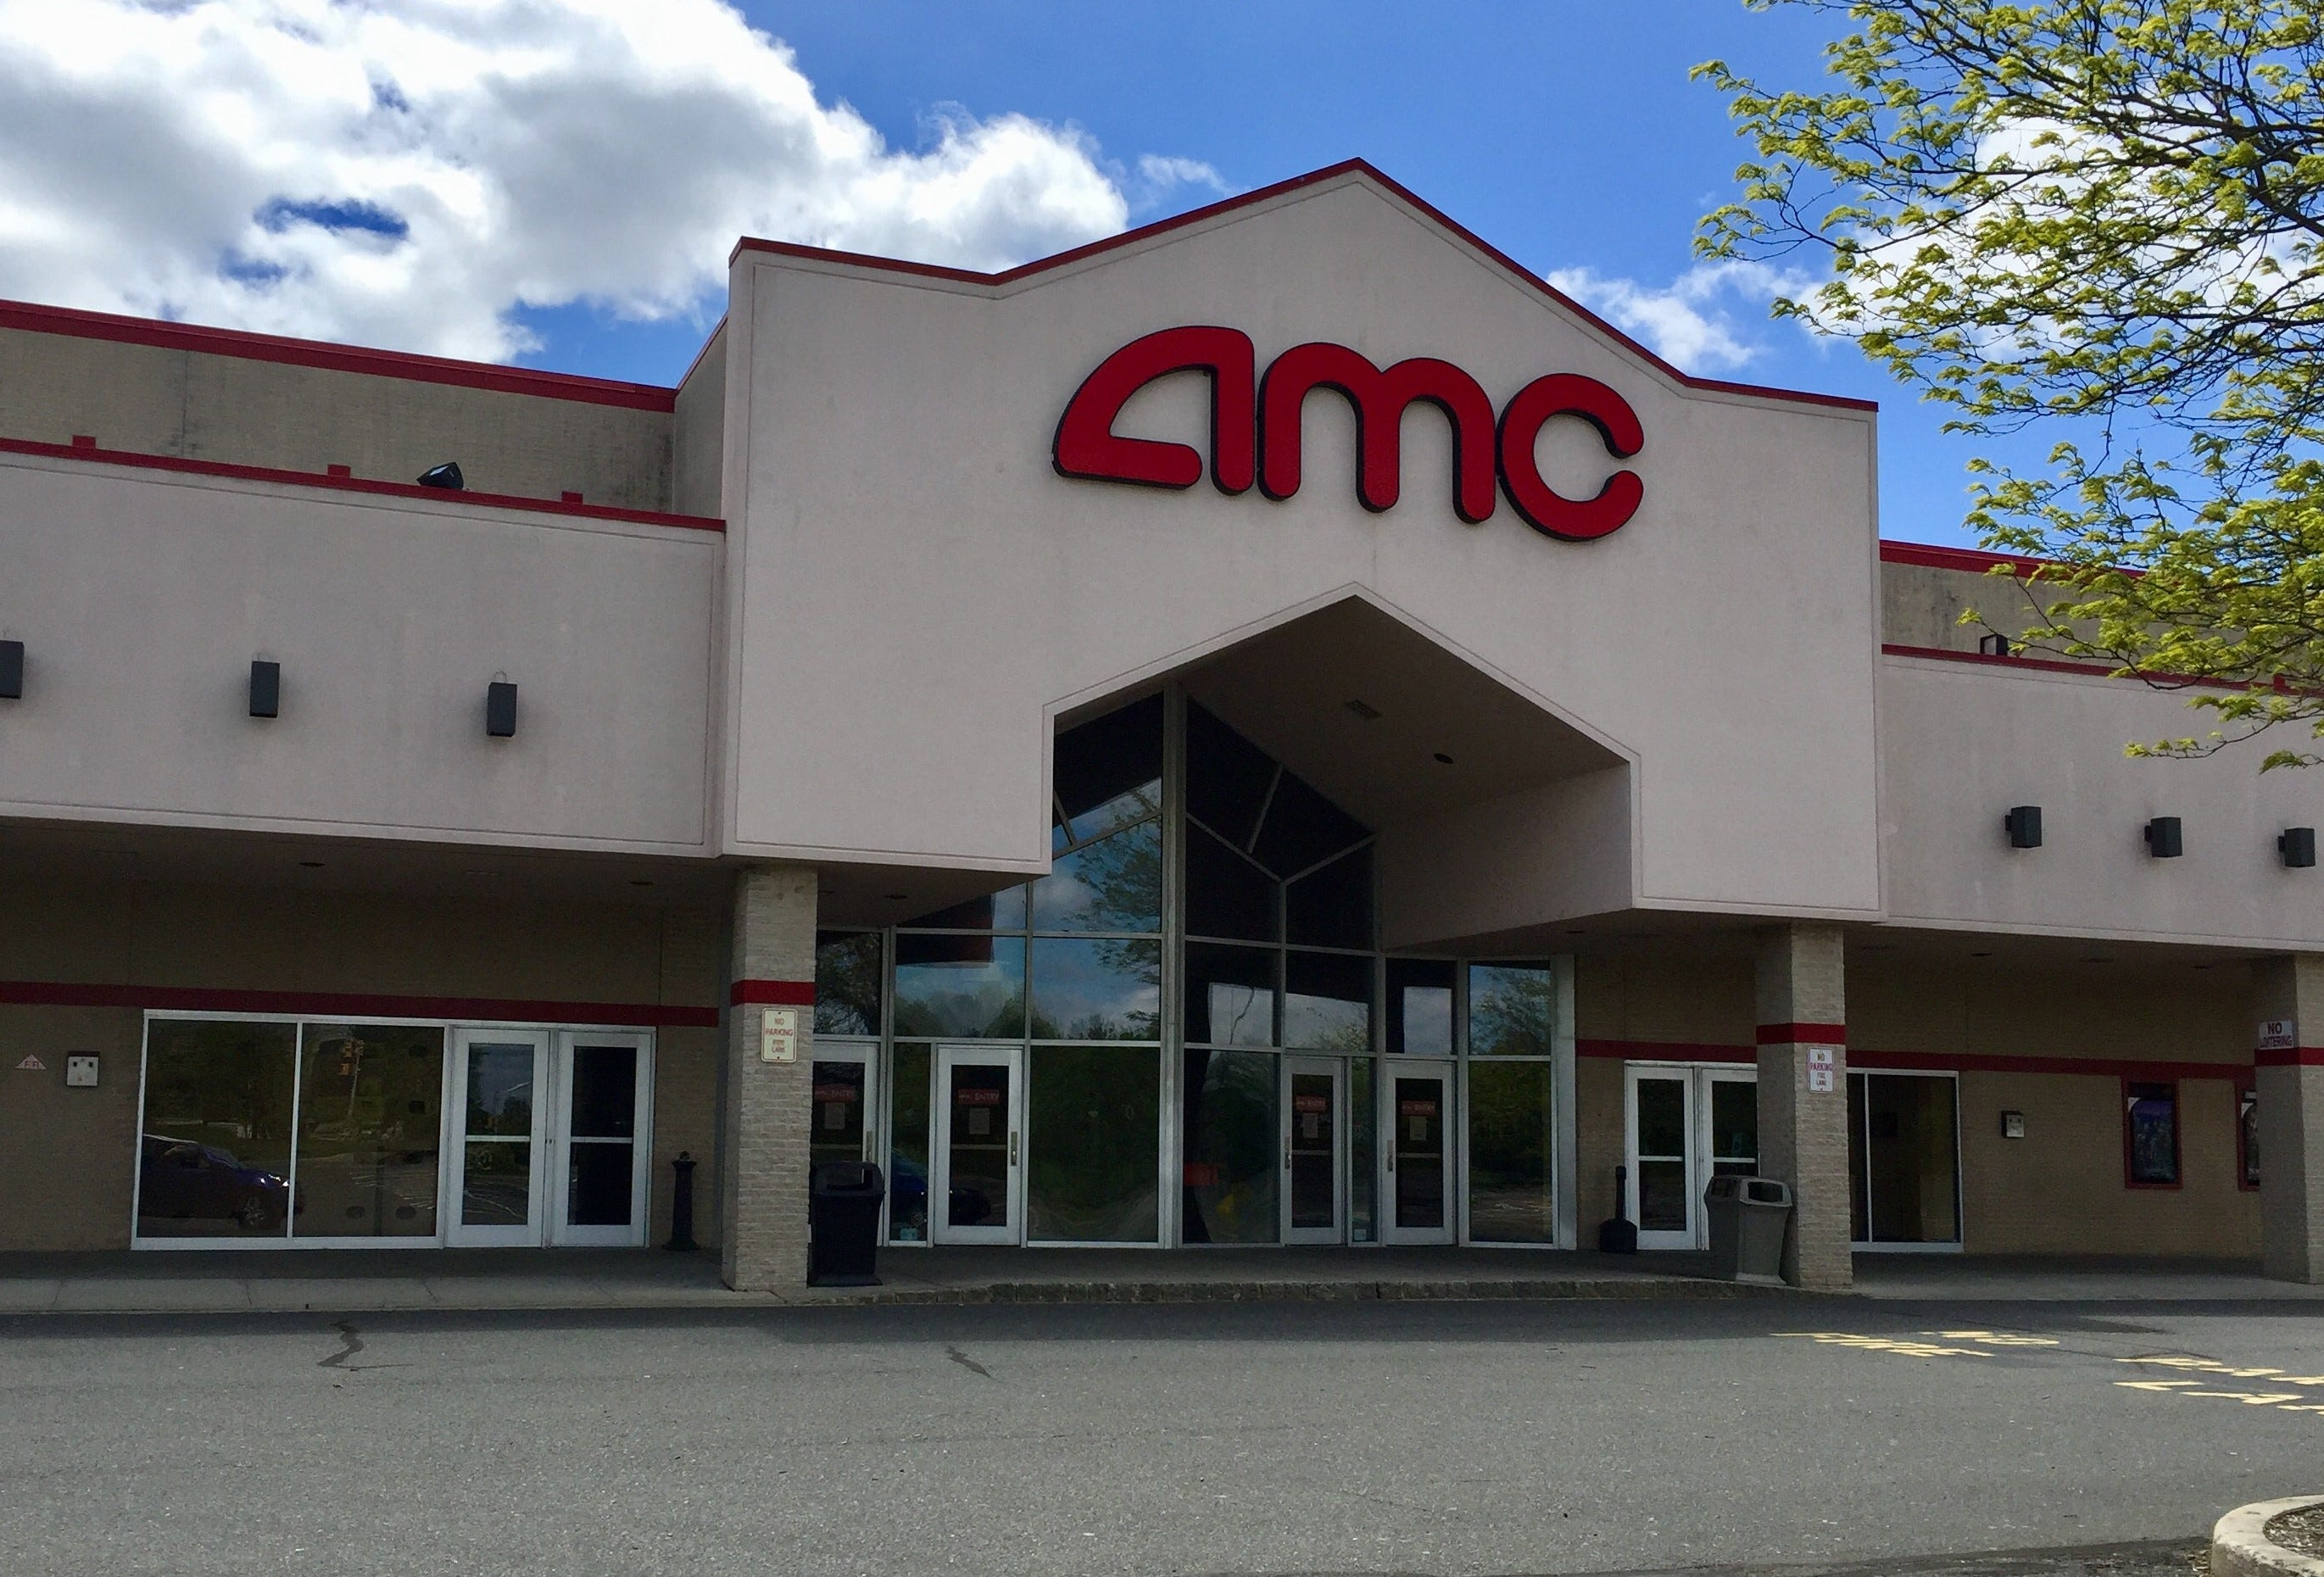 Coronavirus Nj Judge Rejects Bid By Movie Theaters To Reopen Now